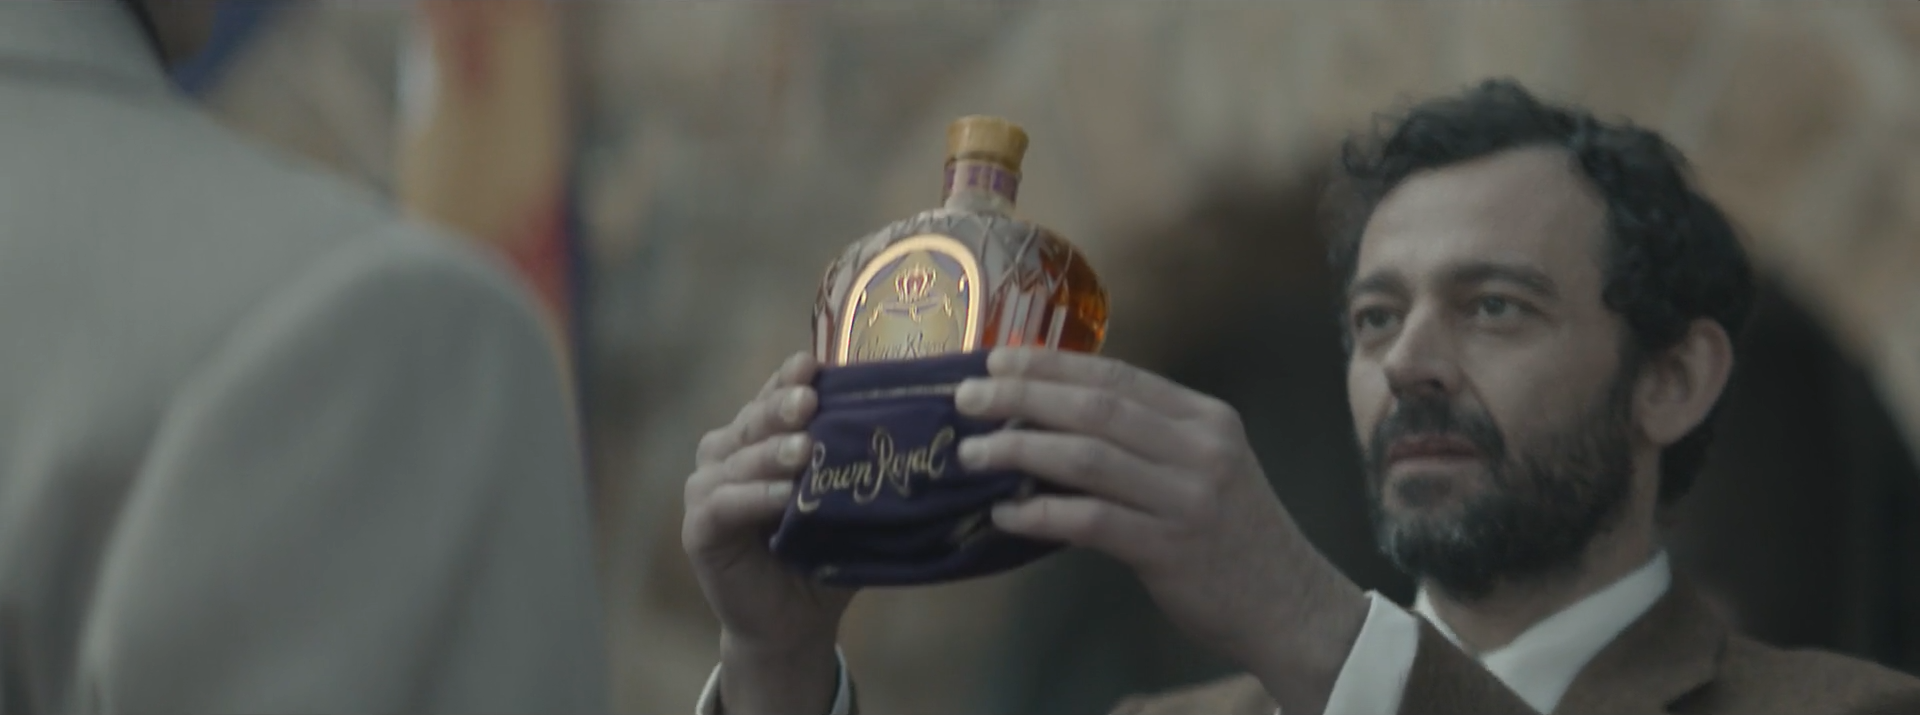 CrownRoyal-The-One-Made-For-A-King.00_01_23_11.Still028